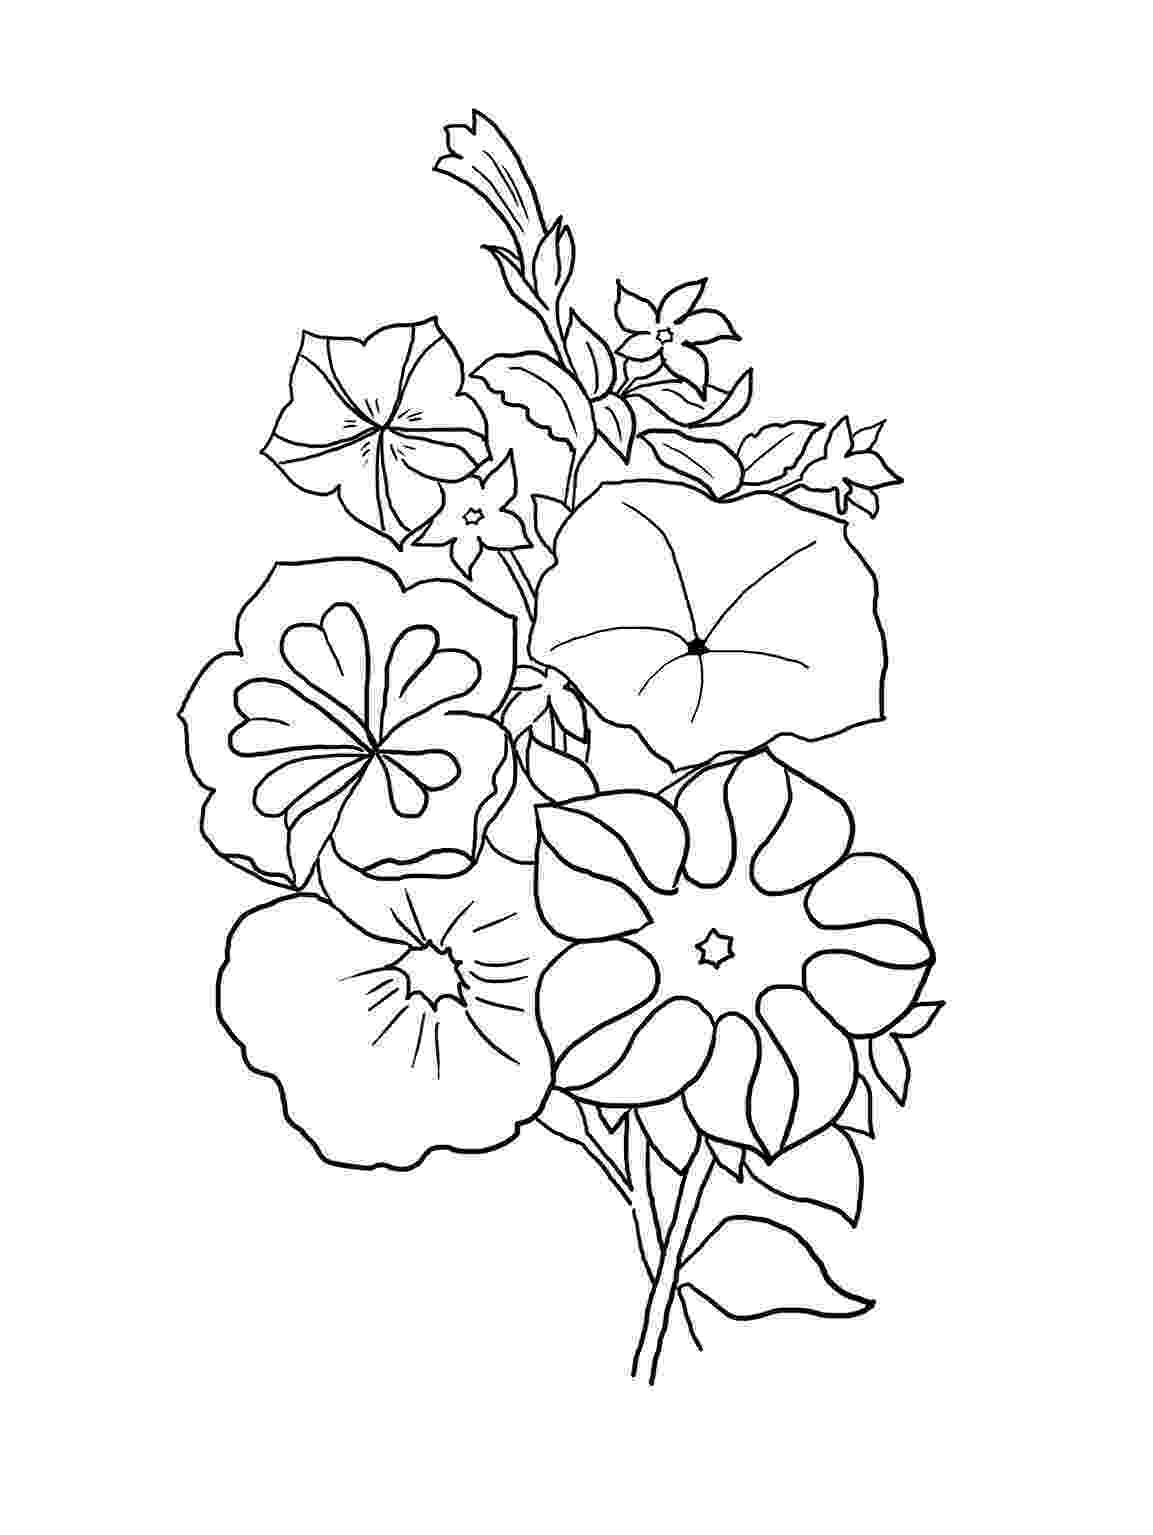 flowers color pages detailed flower coloring pages to download and print for free flowers color pages